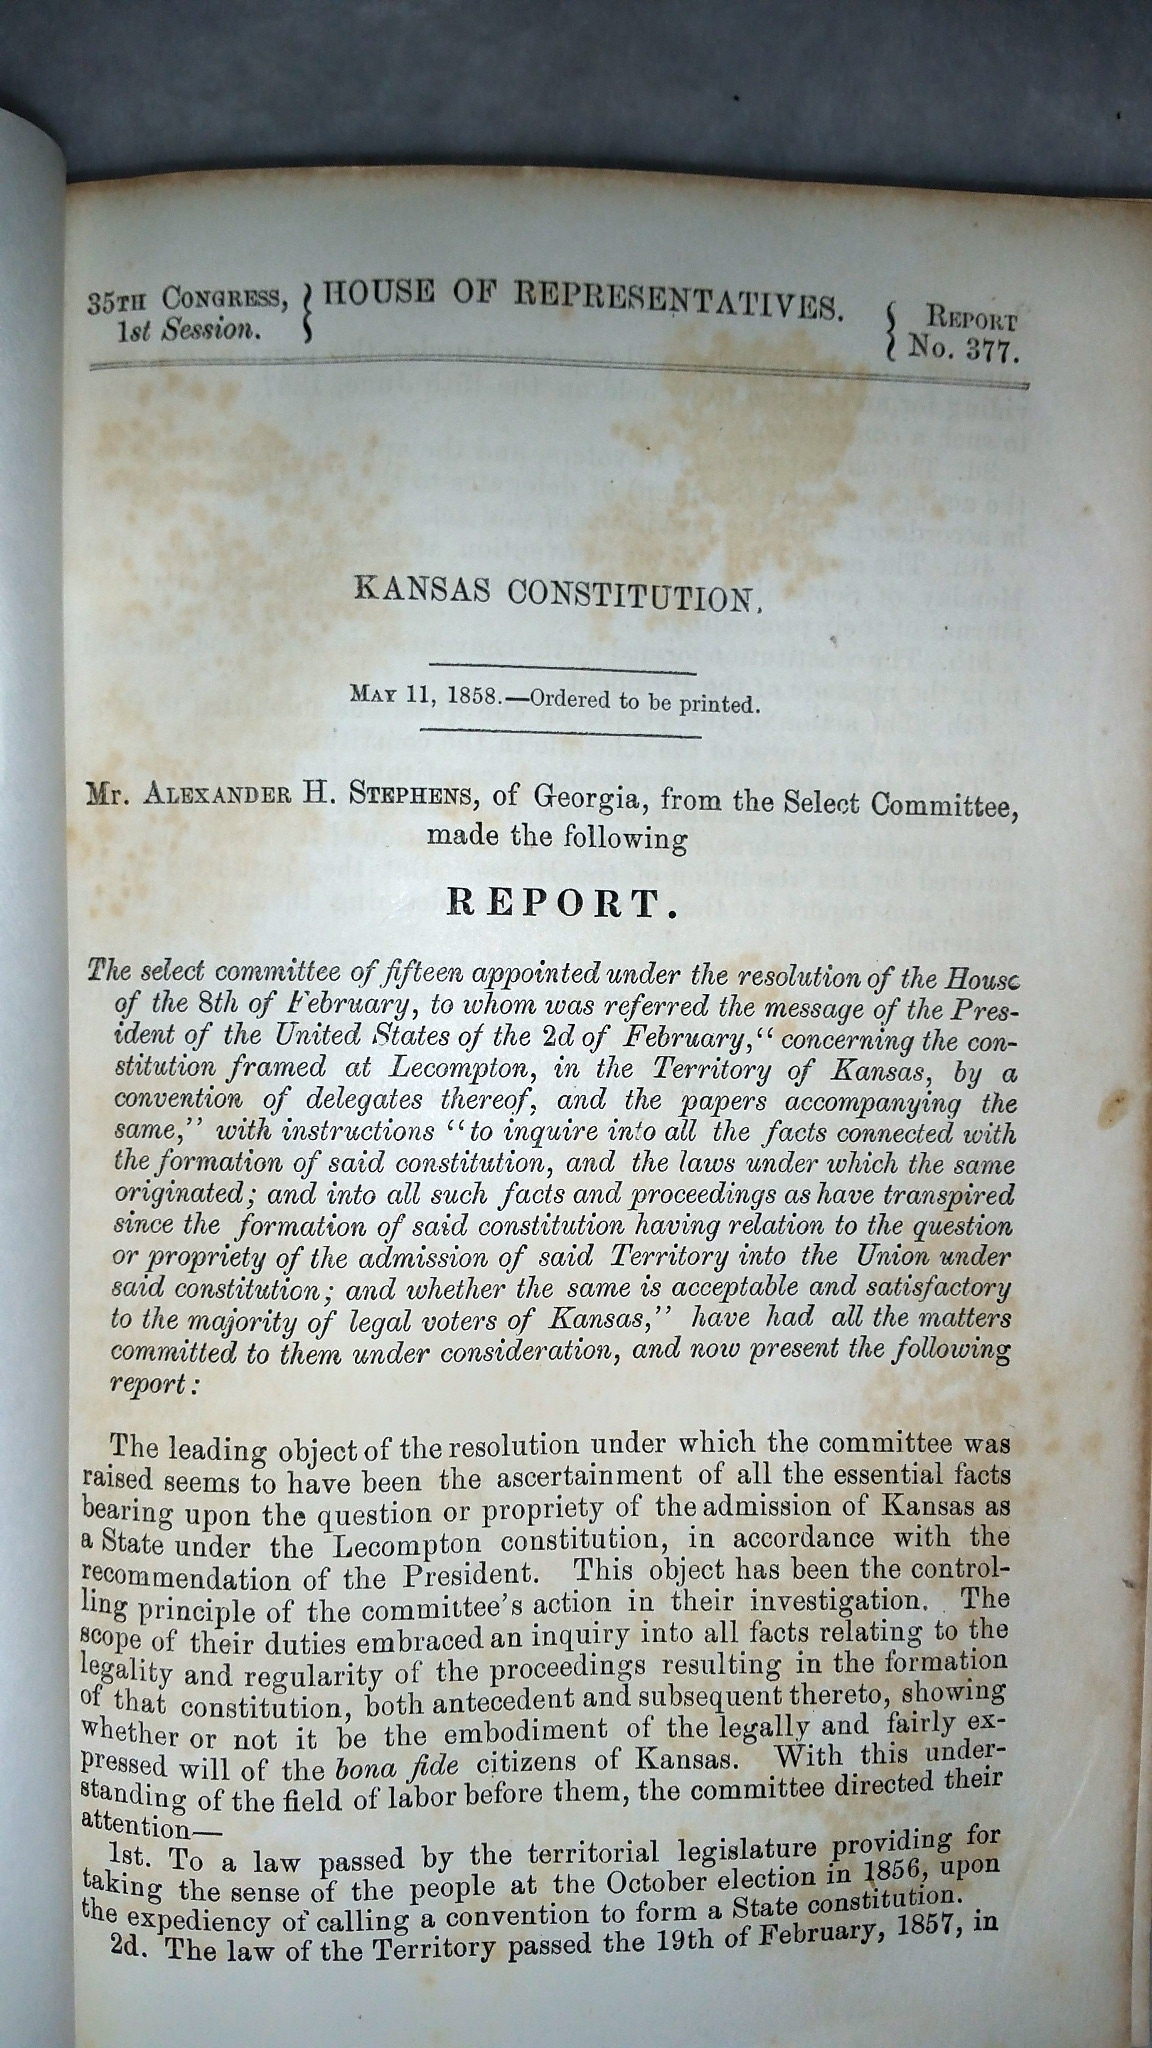 Image for Kansas Constitution (35th Congress, 1st Session, House of Representatives, Report No. 377)